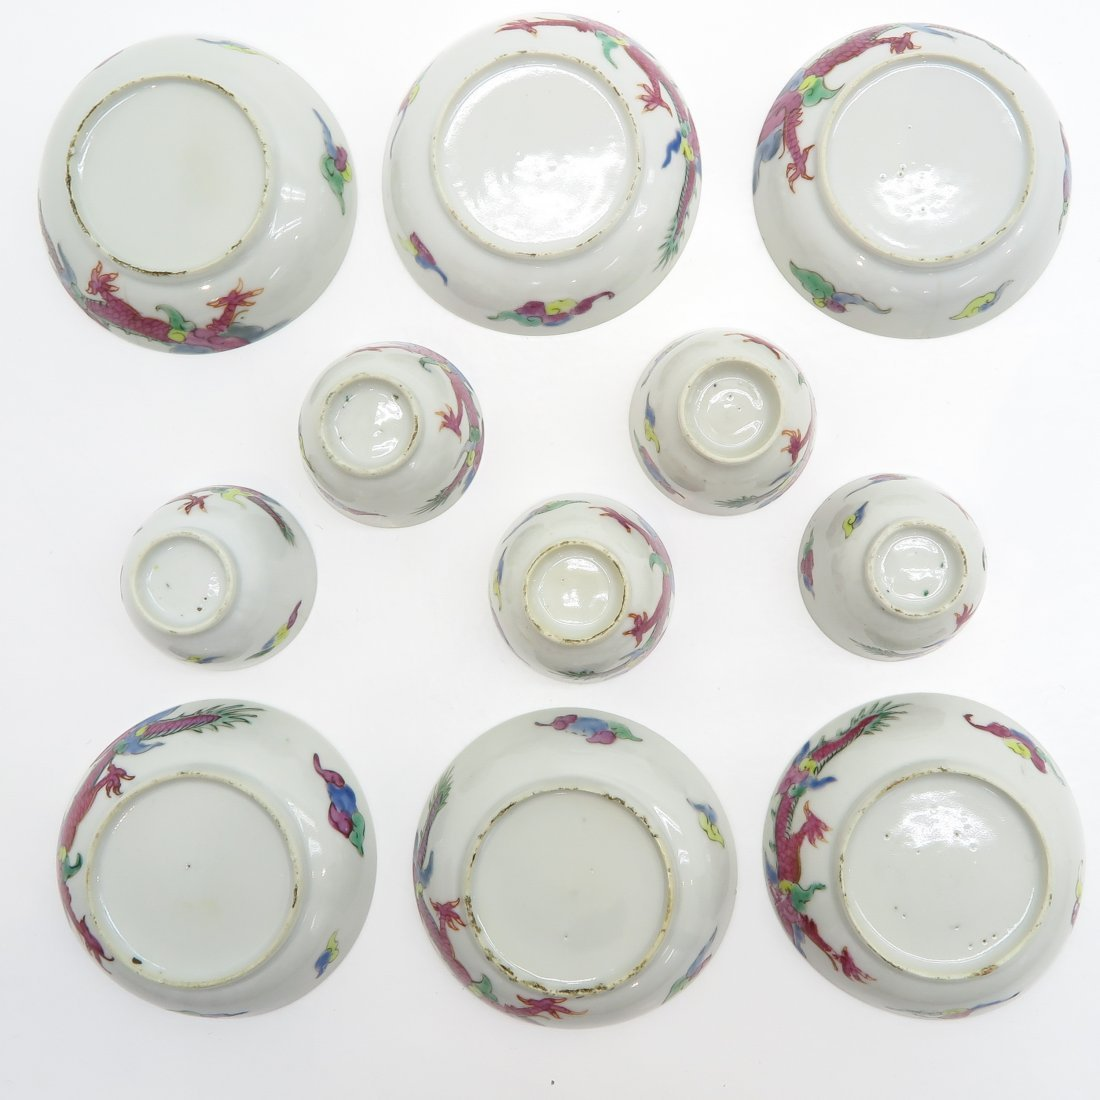 18th / 19th Century China Porcelain Cups and Saucers - 6